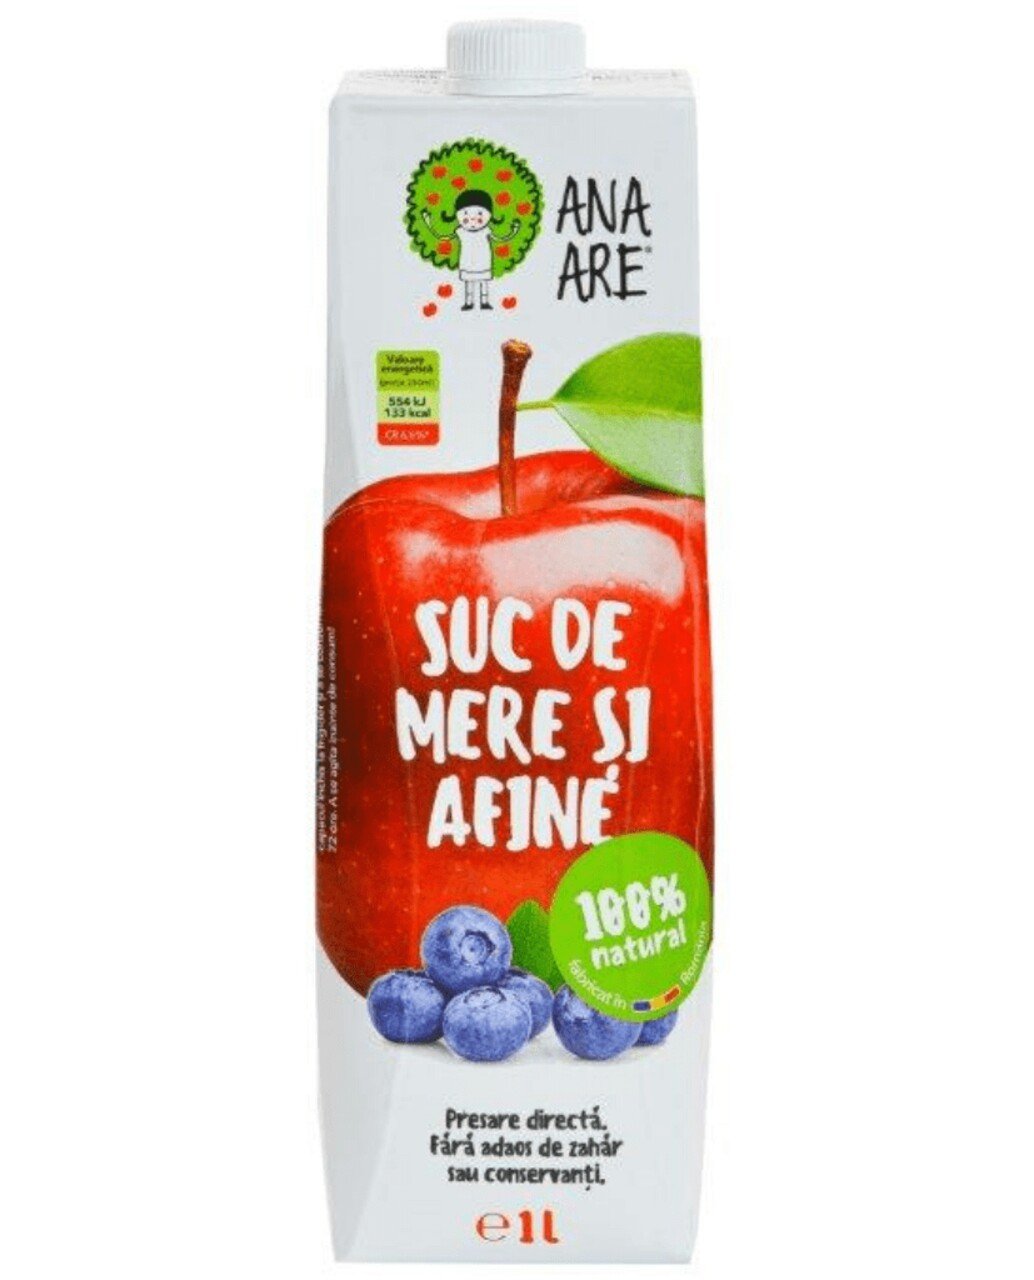 Suc De Mere &  Afine 100% Natural Ana Are 12X 1L